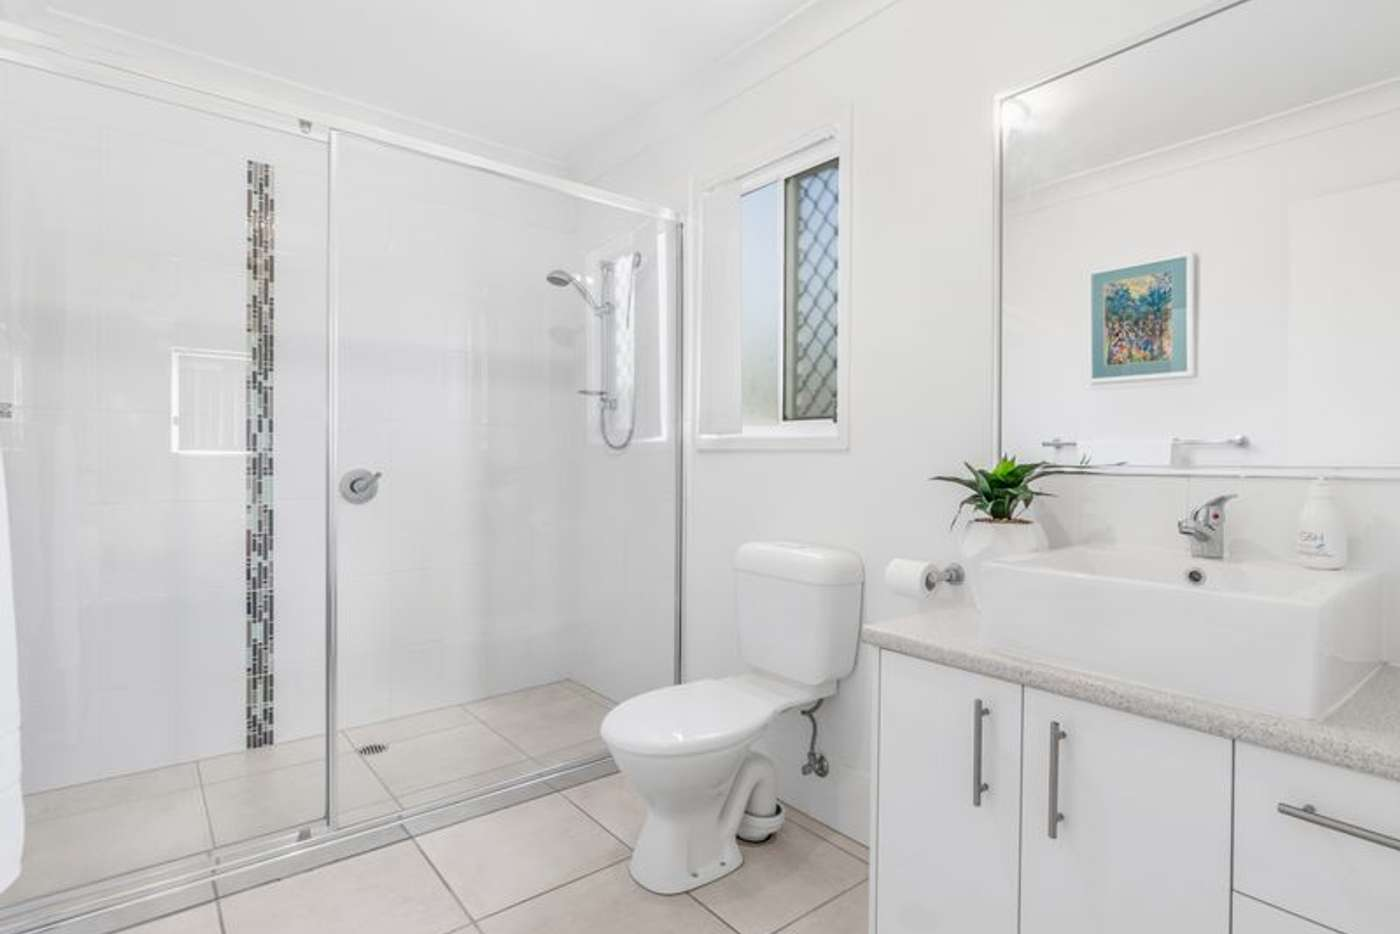 Sixth view of Homely house listing, 15A Wilde Street, Wynnum QLD 4178